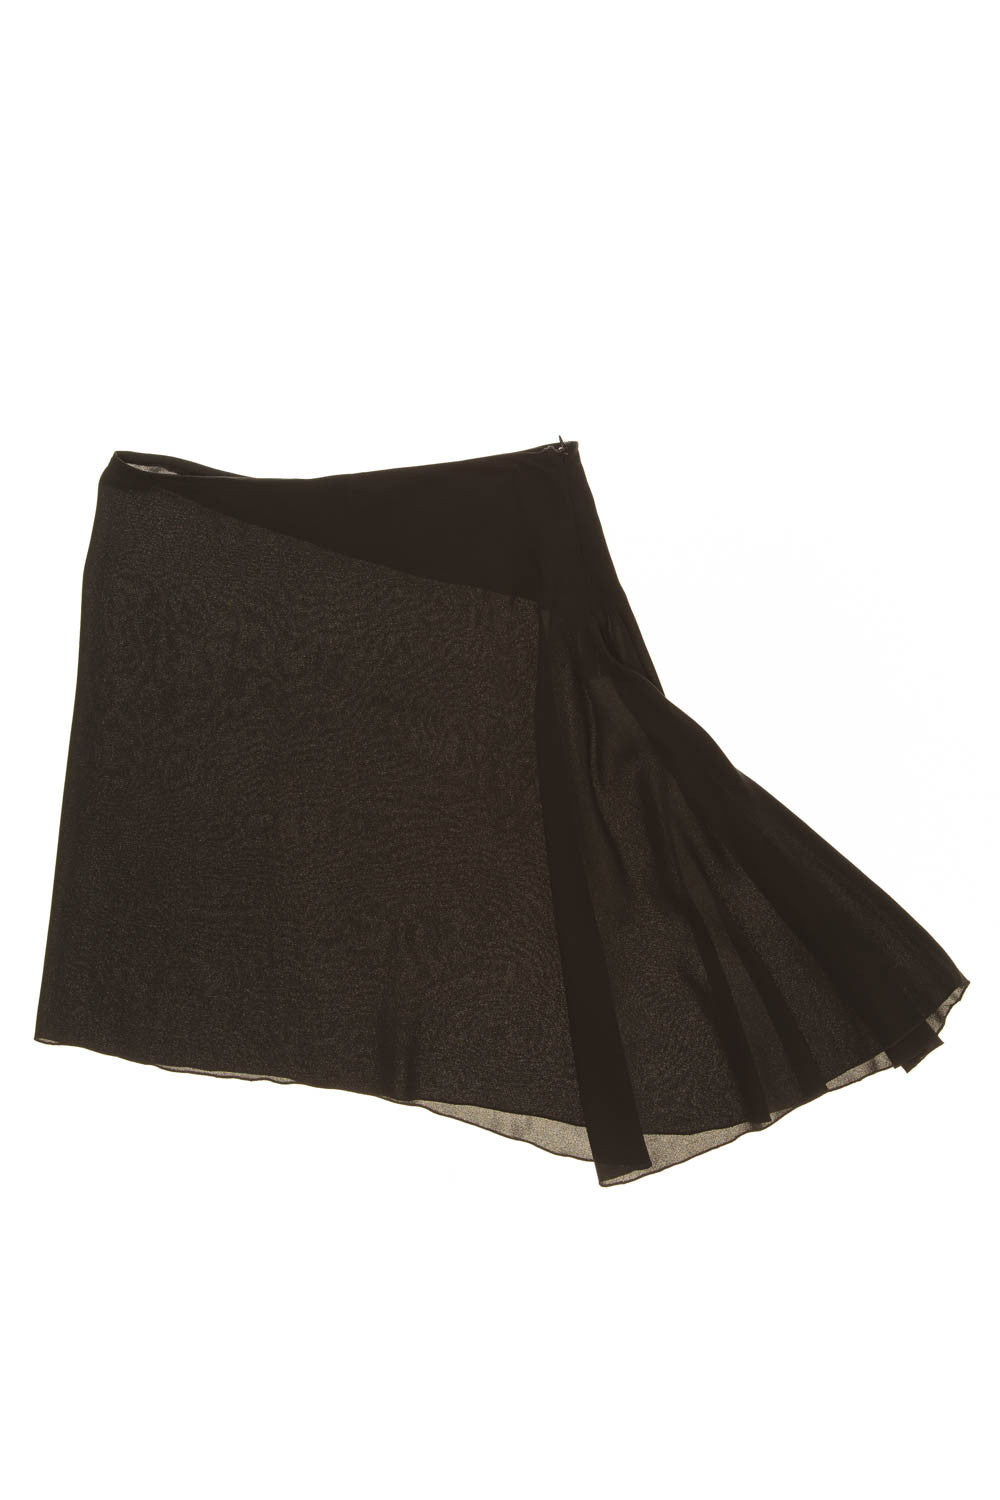 La Perla - Black Mini Skirt - IT 42